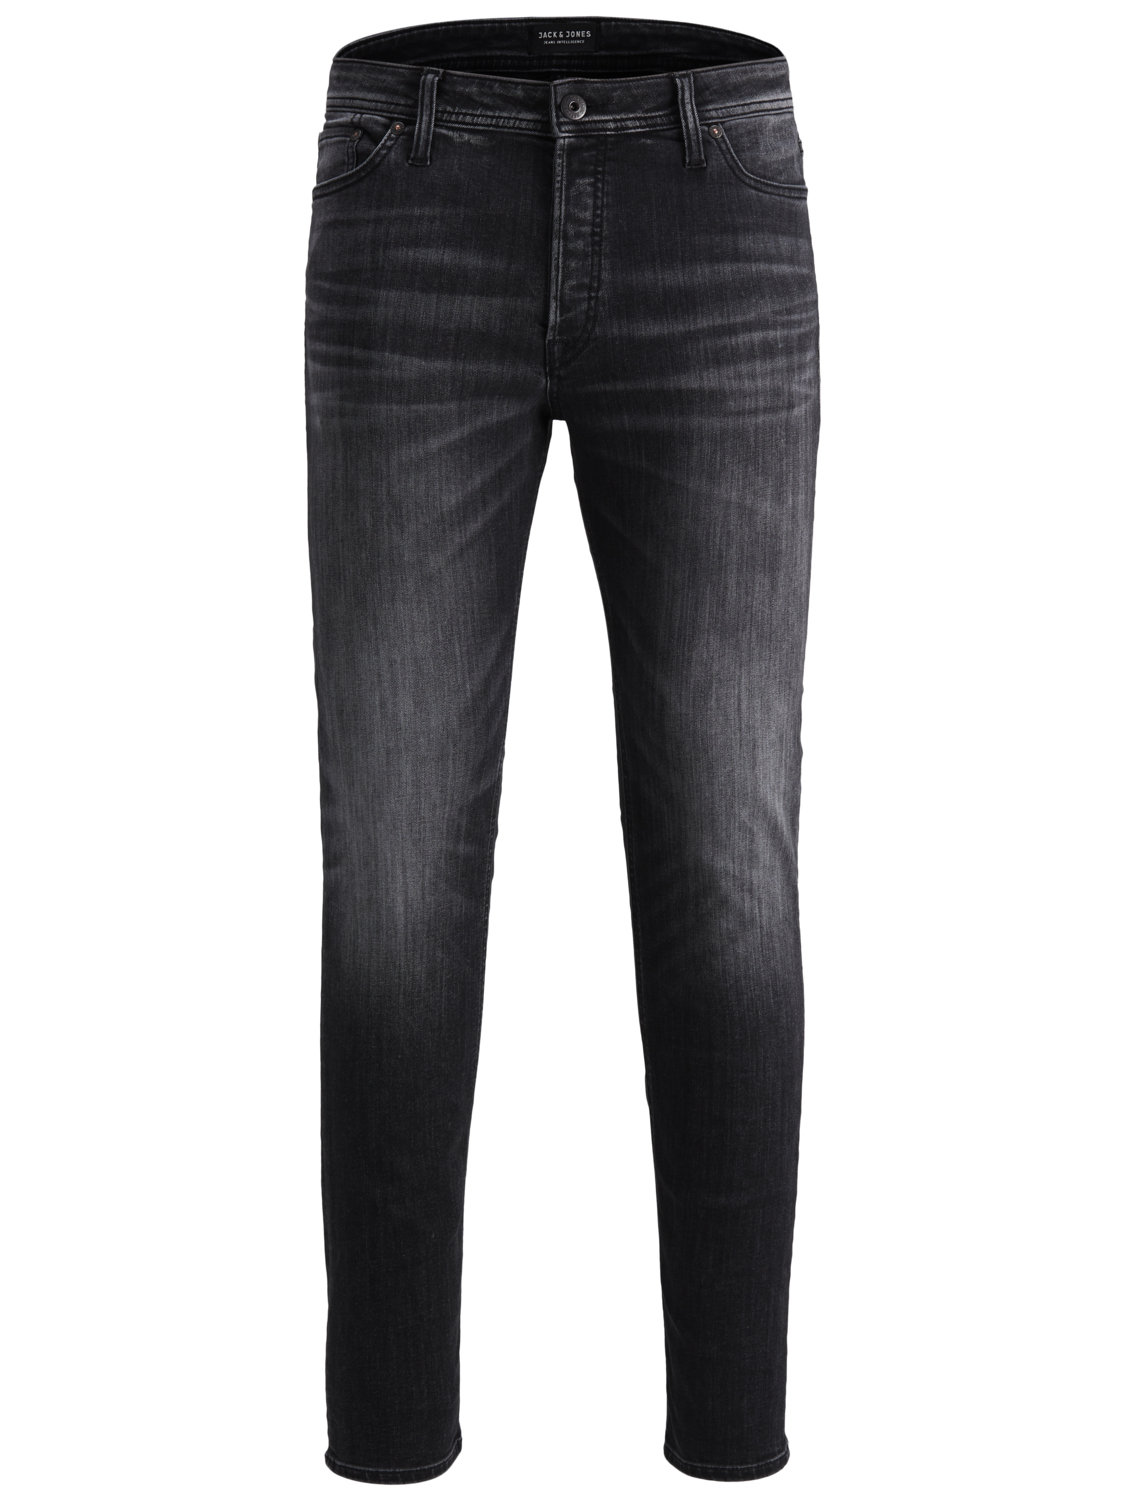 DENIM JACK AND JONES SLIM FIT FIT STRAIGHT LEG